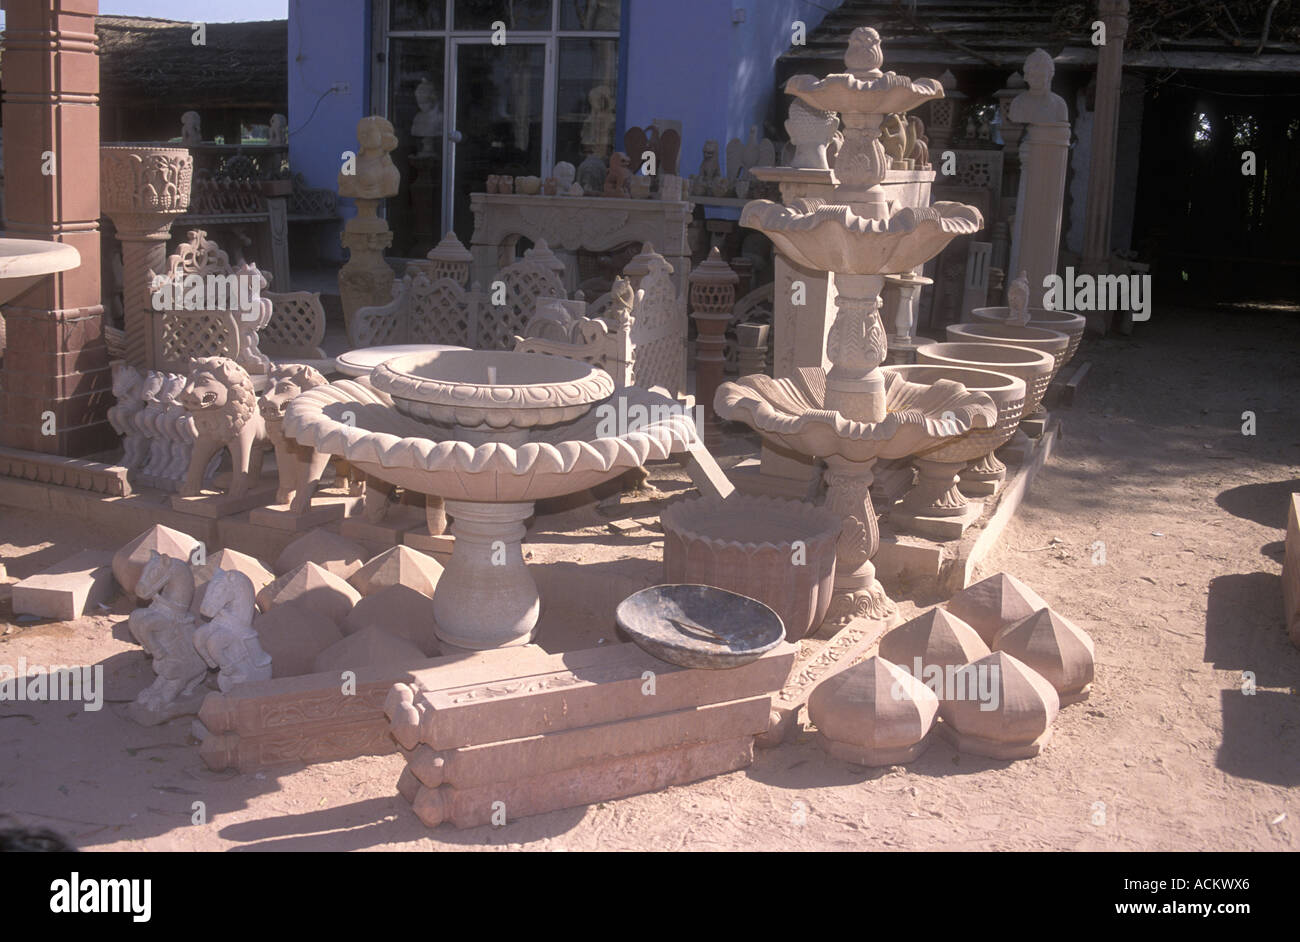 Stone carvings for sale in uttar pradesh india these include stock